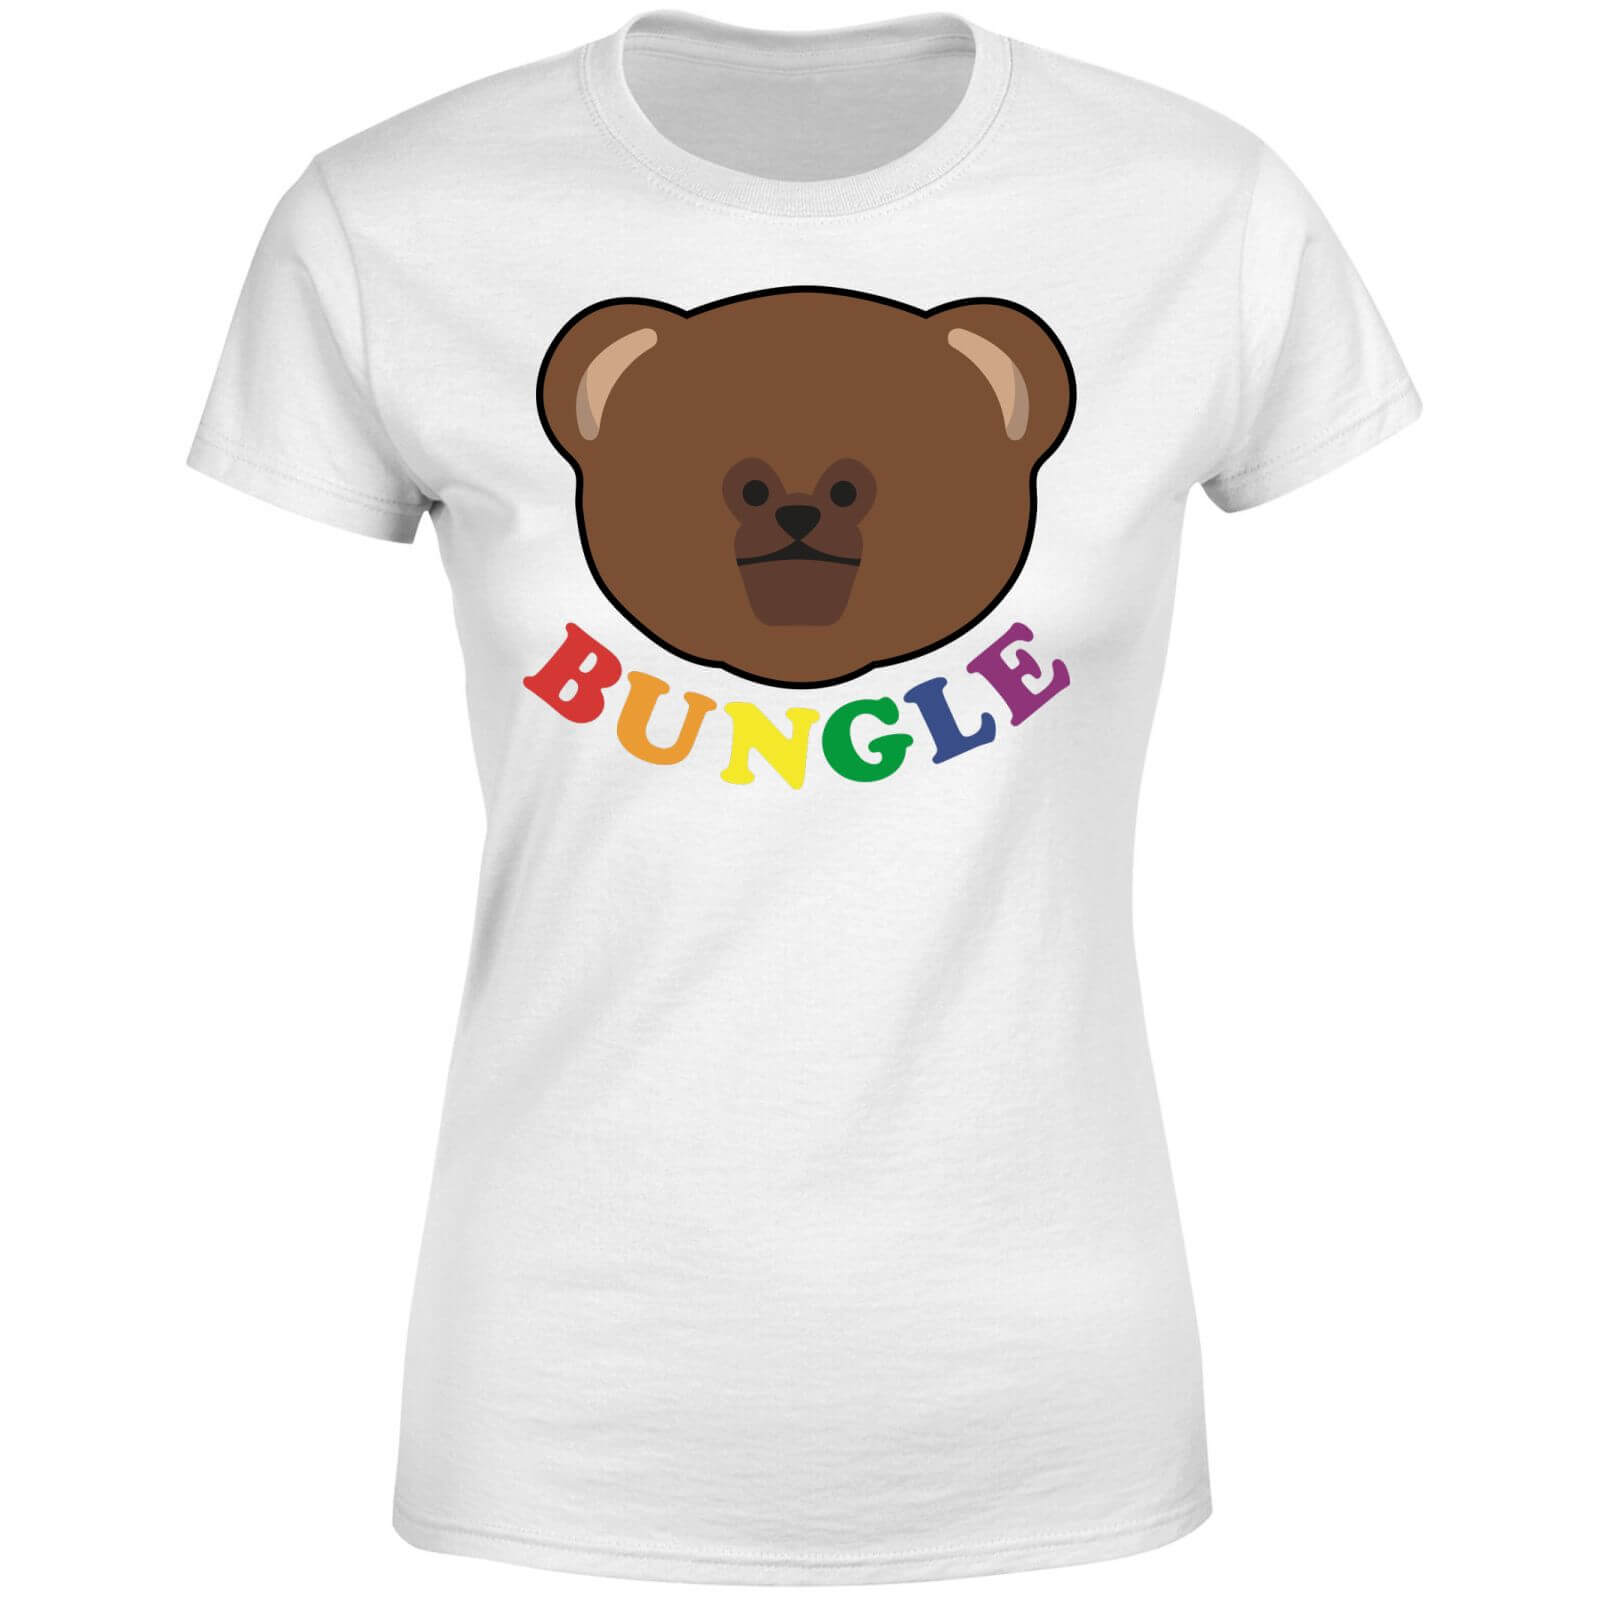 Rainbow Bungle Club Women